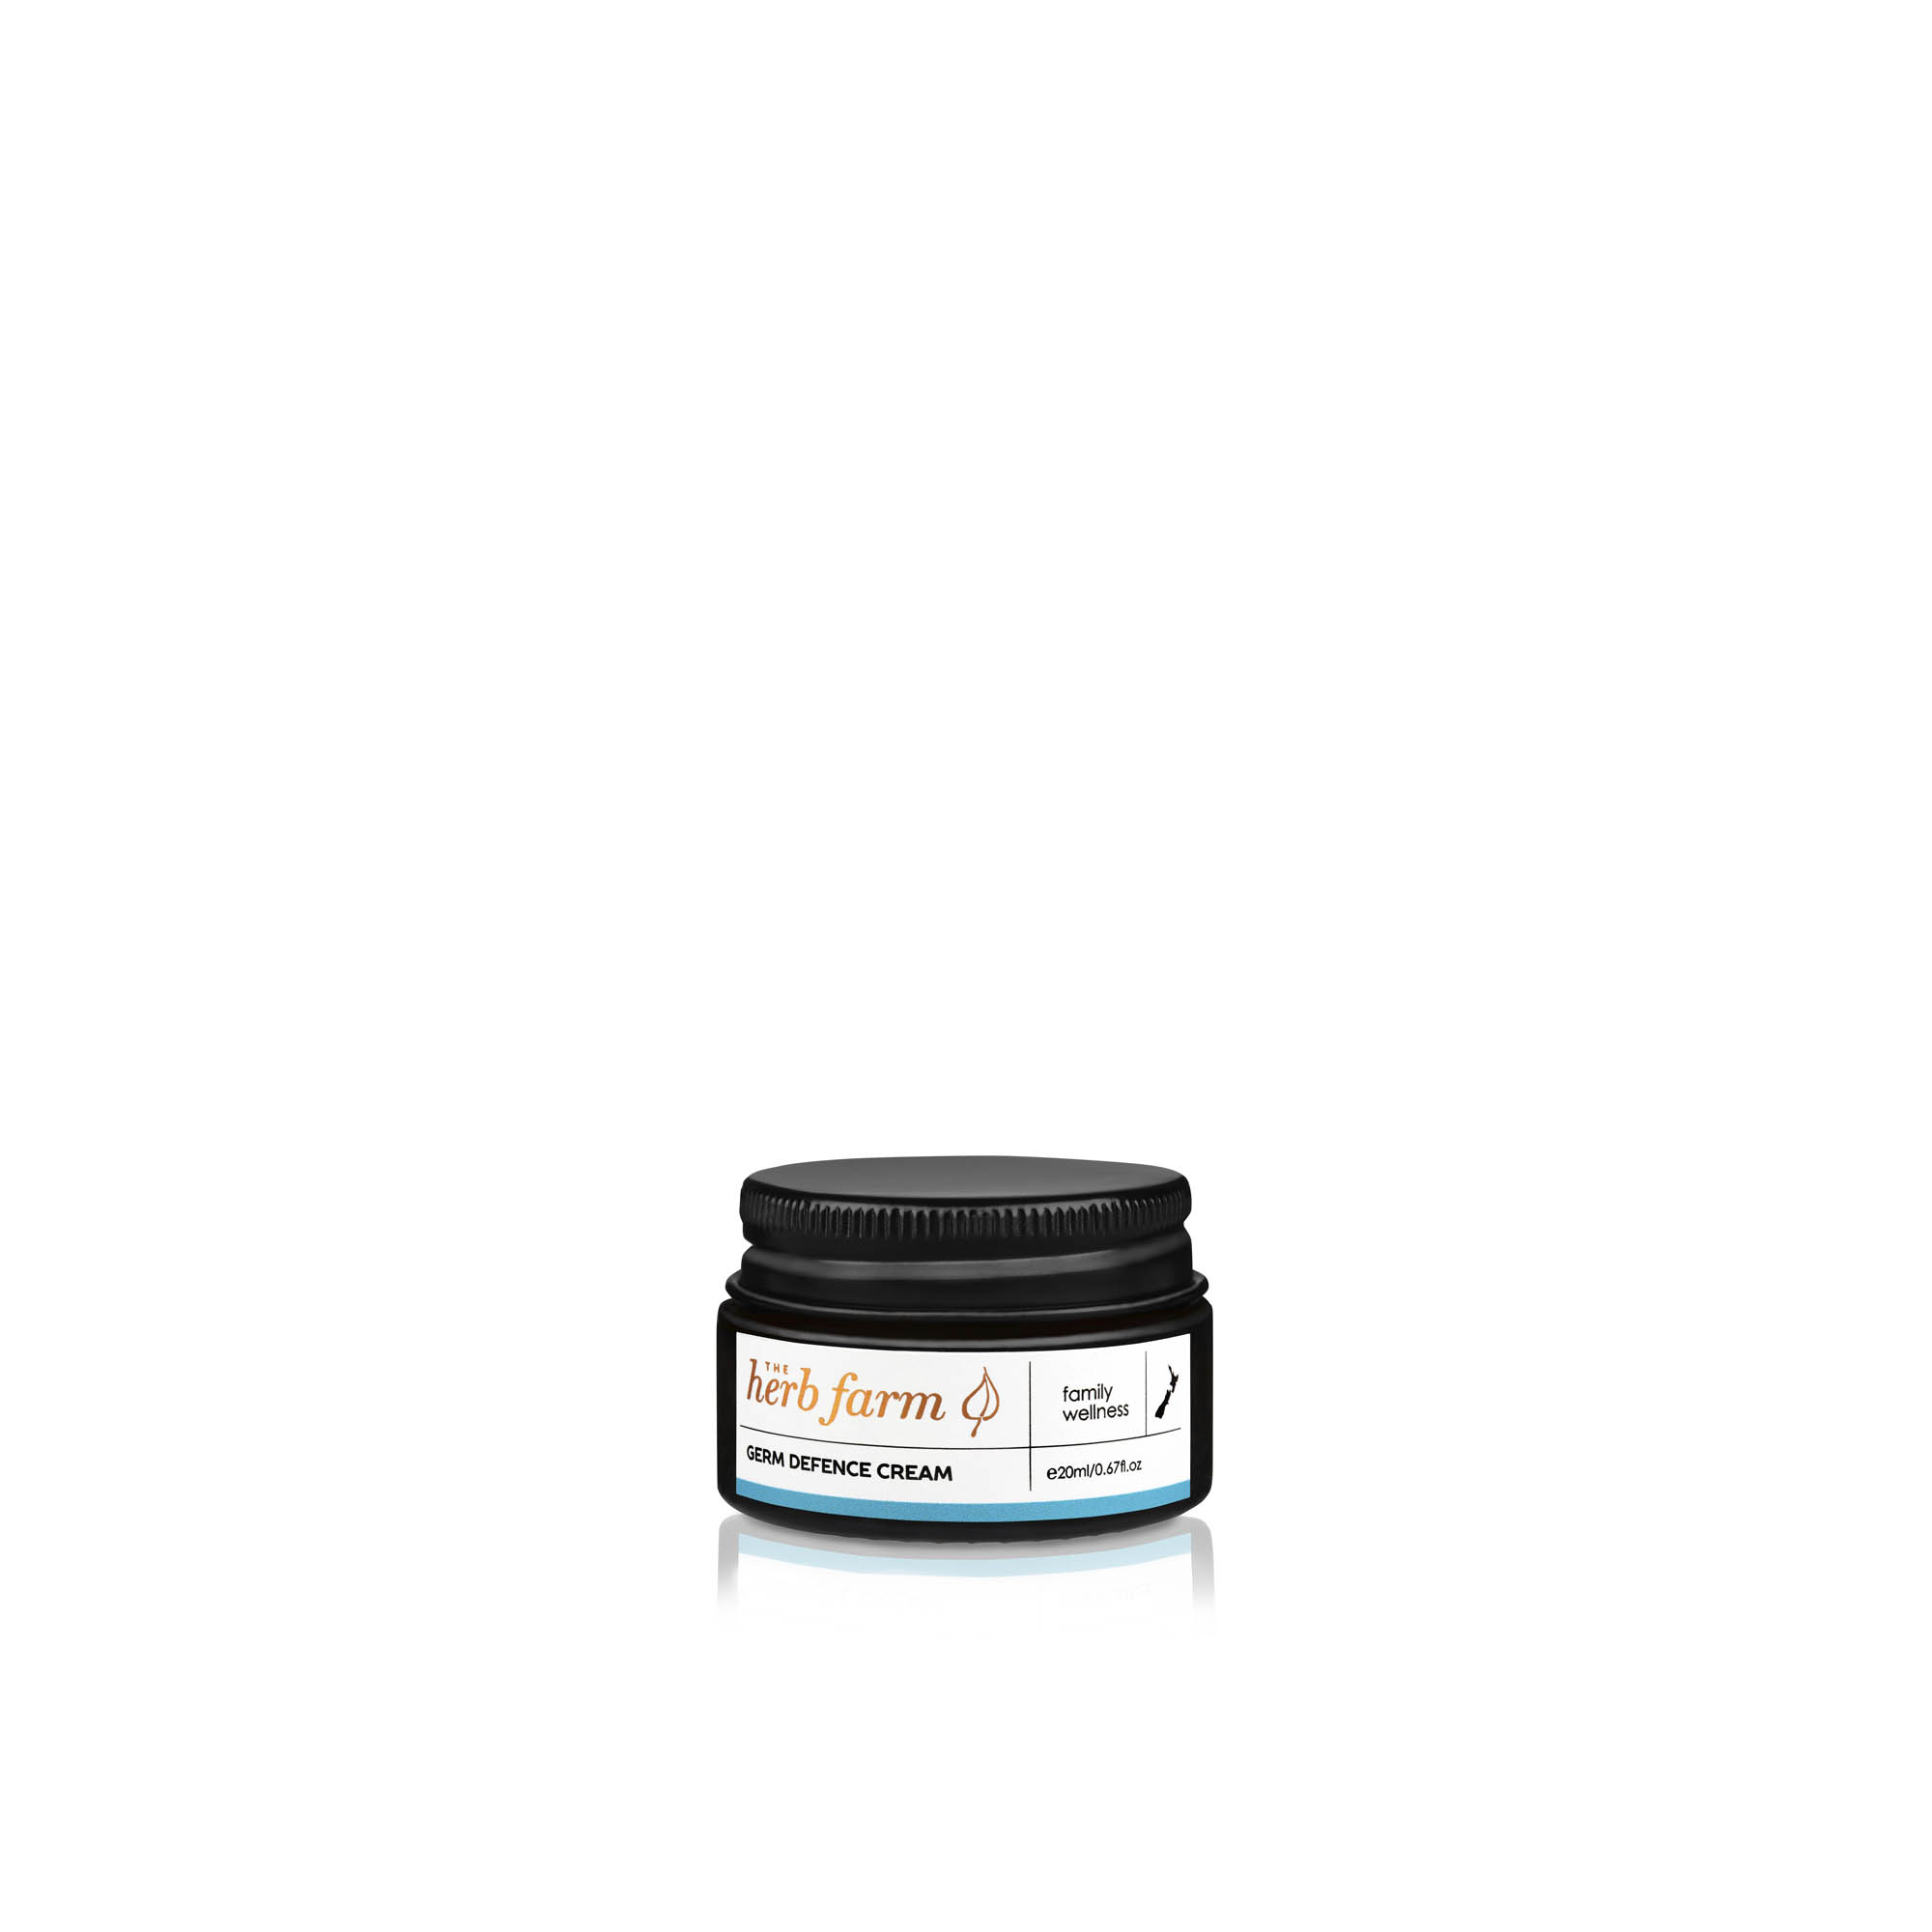 The Herb Farm Germ Defence Cream